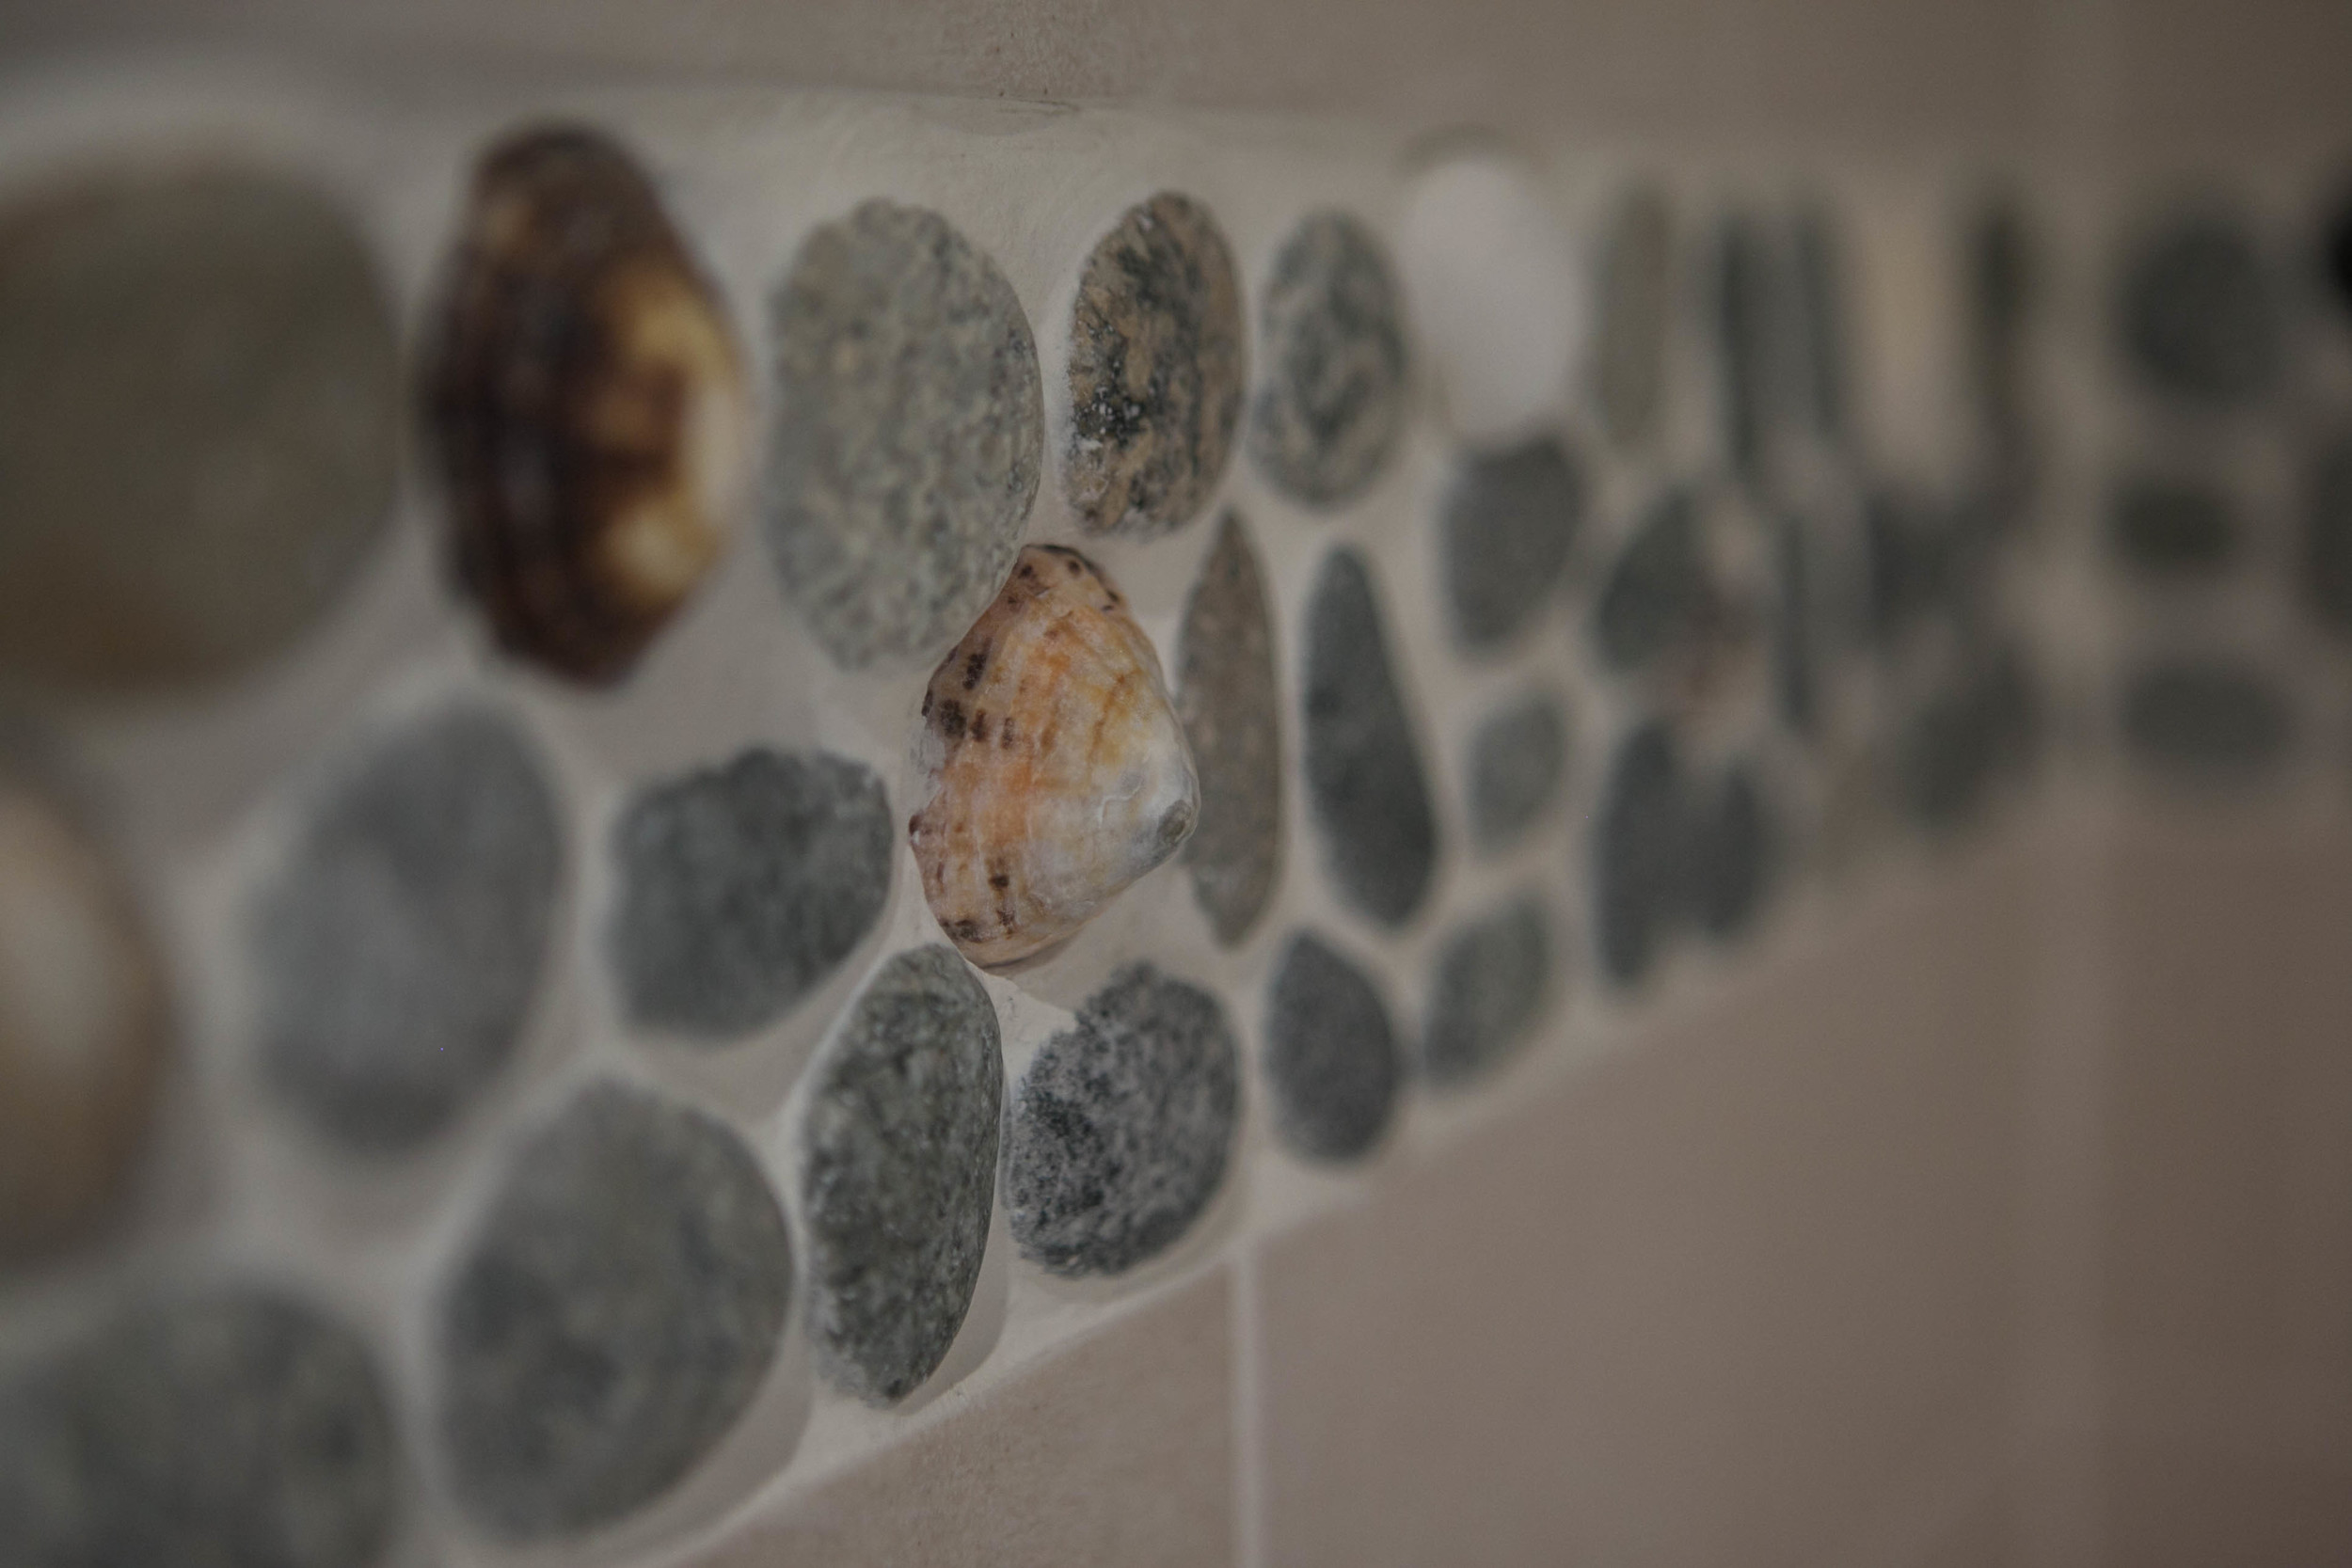 The tiling features real shells from Scarista beach